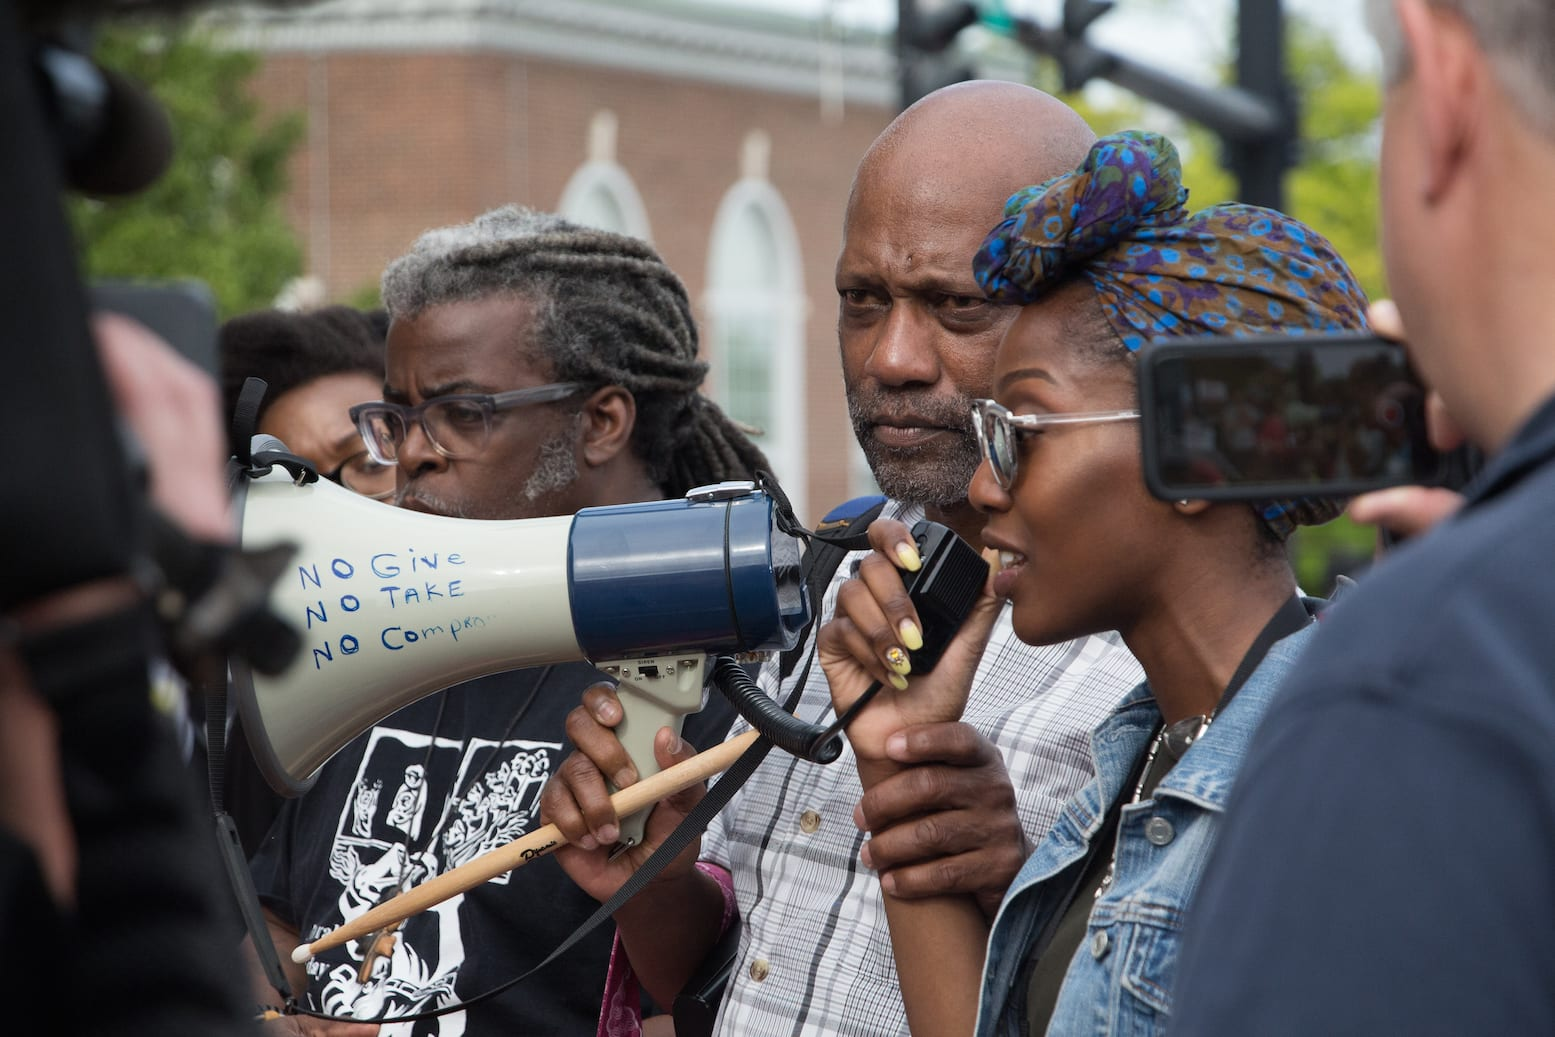 DeLisa Dixon has the floor during a Black Lives Matter rally in West Hartford, while Cornell Lewis holds the megaphone. With them is John L. Selders. Photo credit: Michaela Melvin